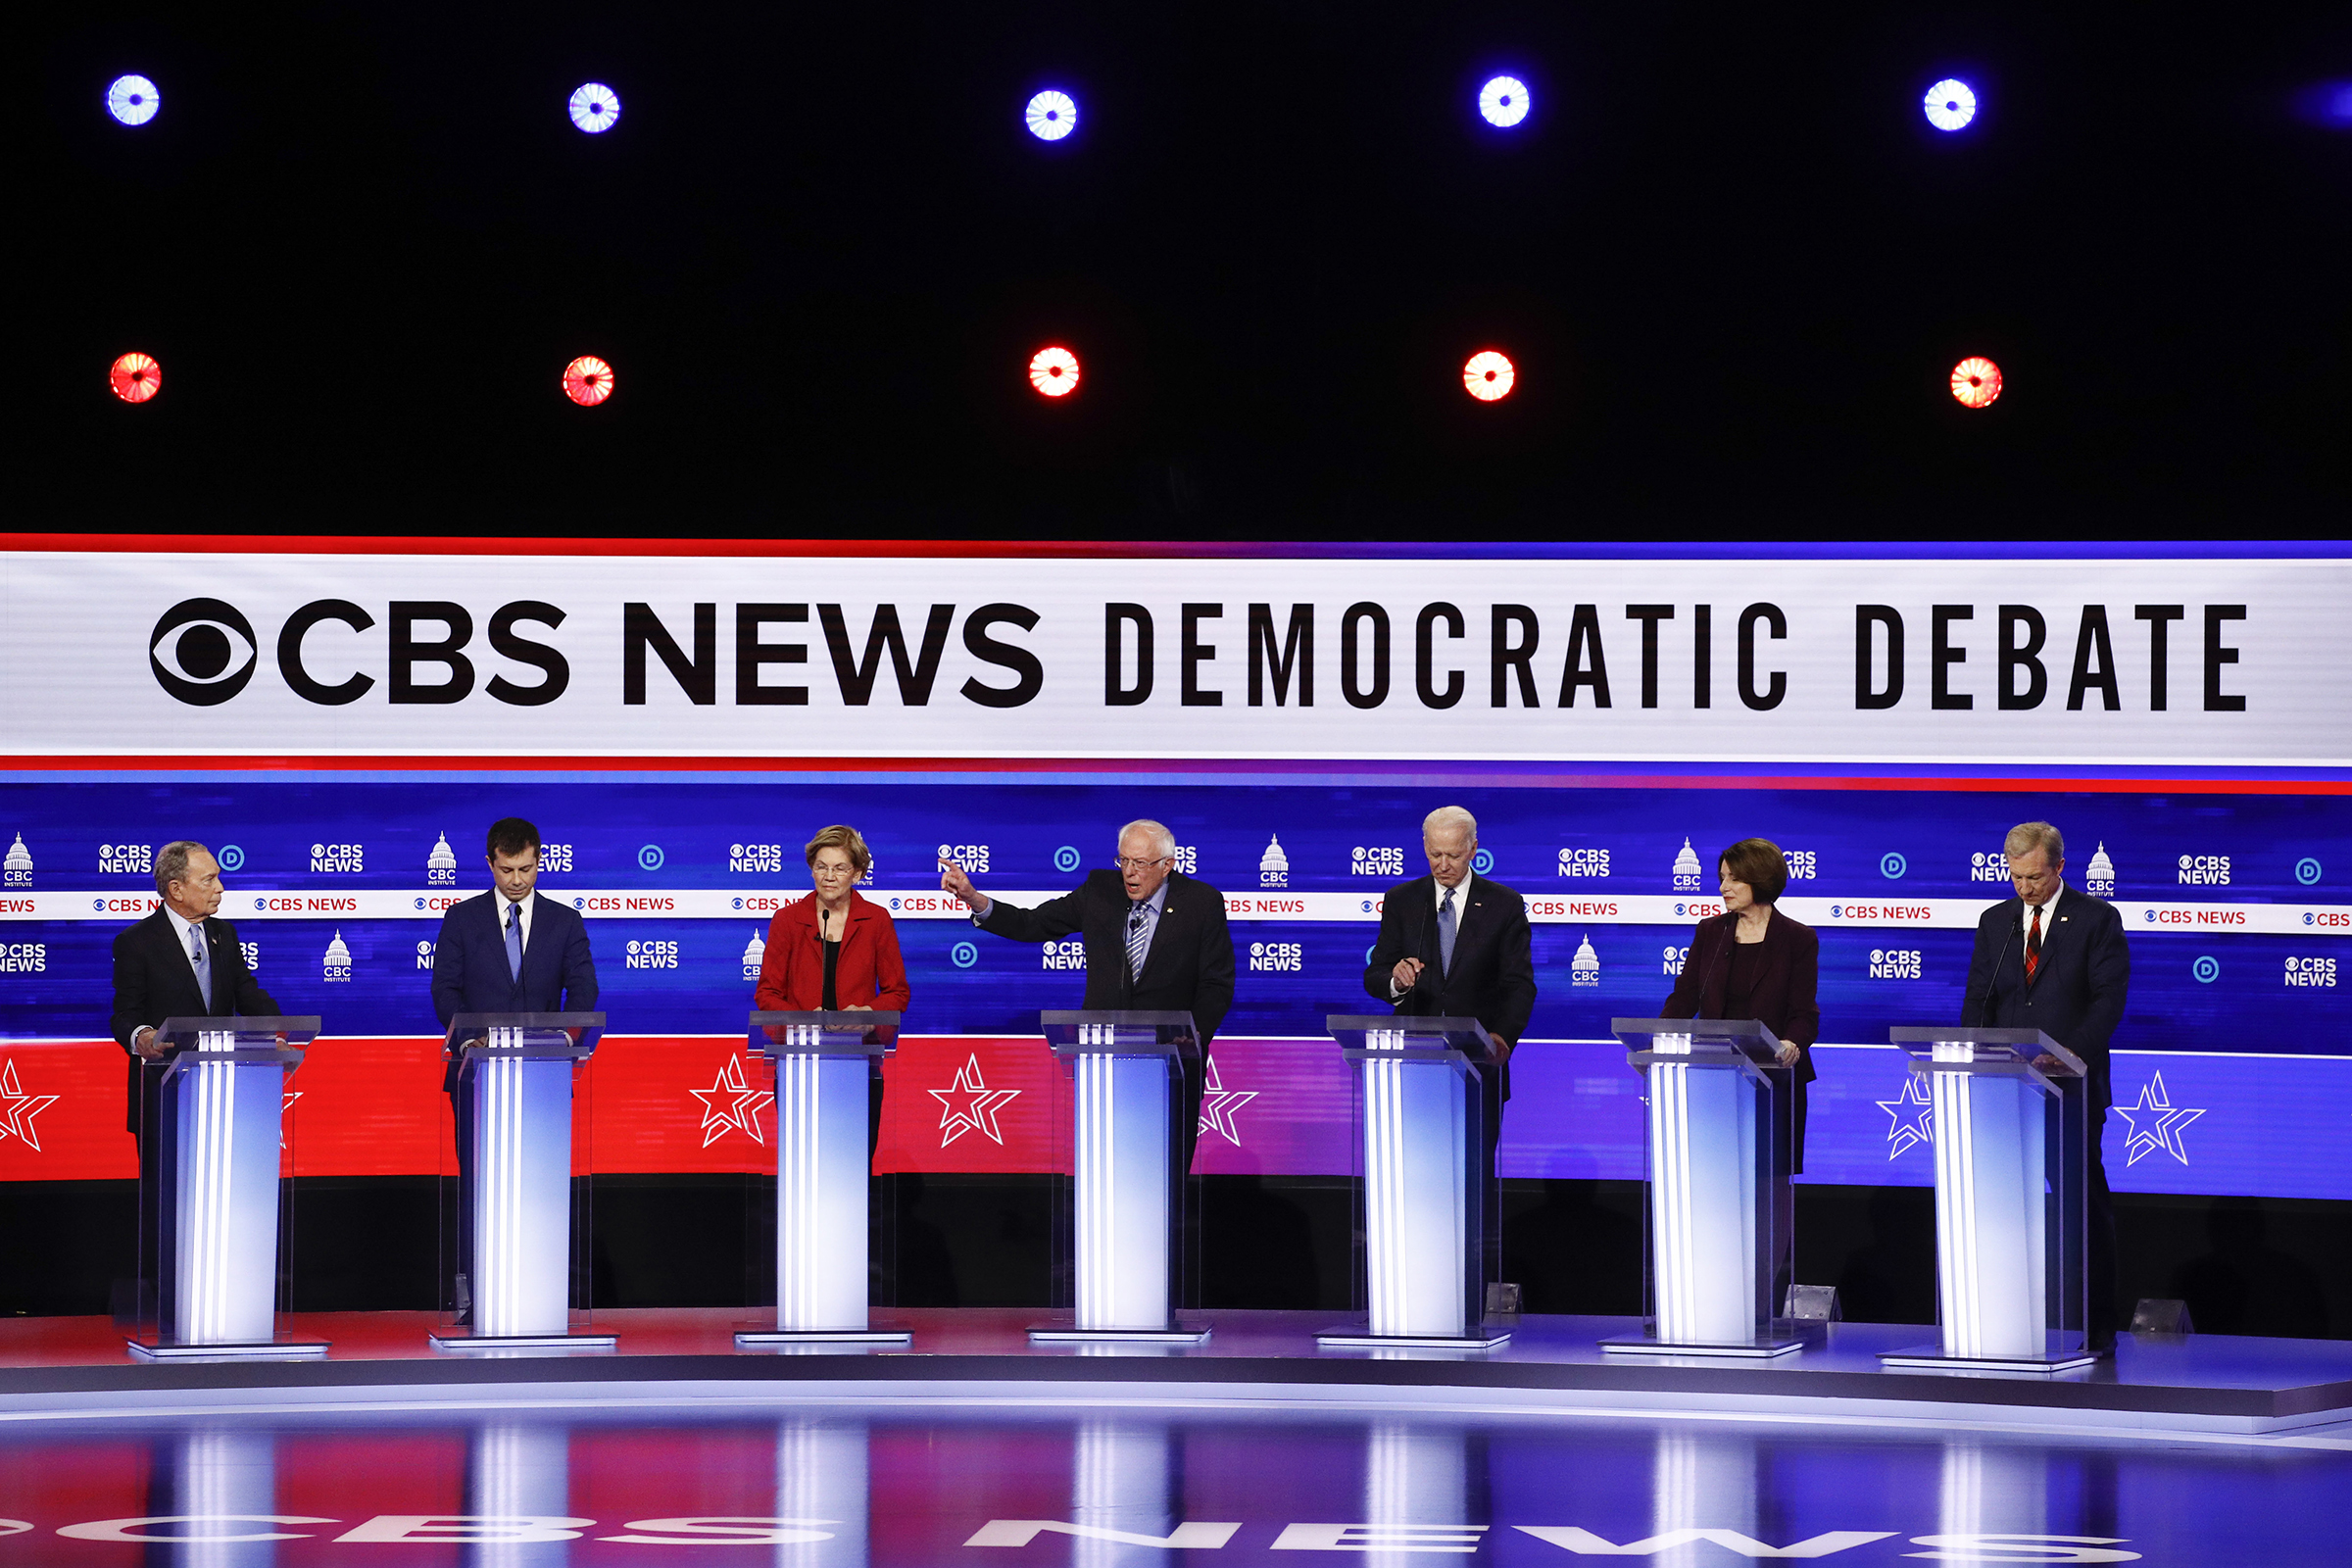 From left, Democratic presidential candidates, former New York City Mayor Mike Bloomberg, former South Bend Mayor Pete Buttigieg, Sen. Elizabeth Warren, D-Mass., Sen. Bernie Sanders, I-Vt., former Vice President Joe Biden, Sen. Amy Klobuchar, D-Minn., and businessman Tom Steyer, participate in a Democratic presidential primary debate at the Gaillard Center, Tuesday, Feb. 25 in Charleston, S.C.